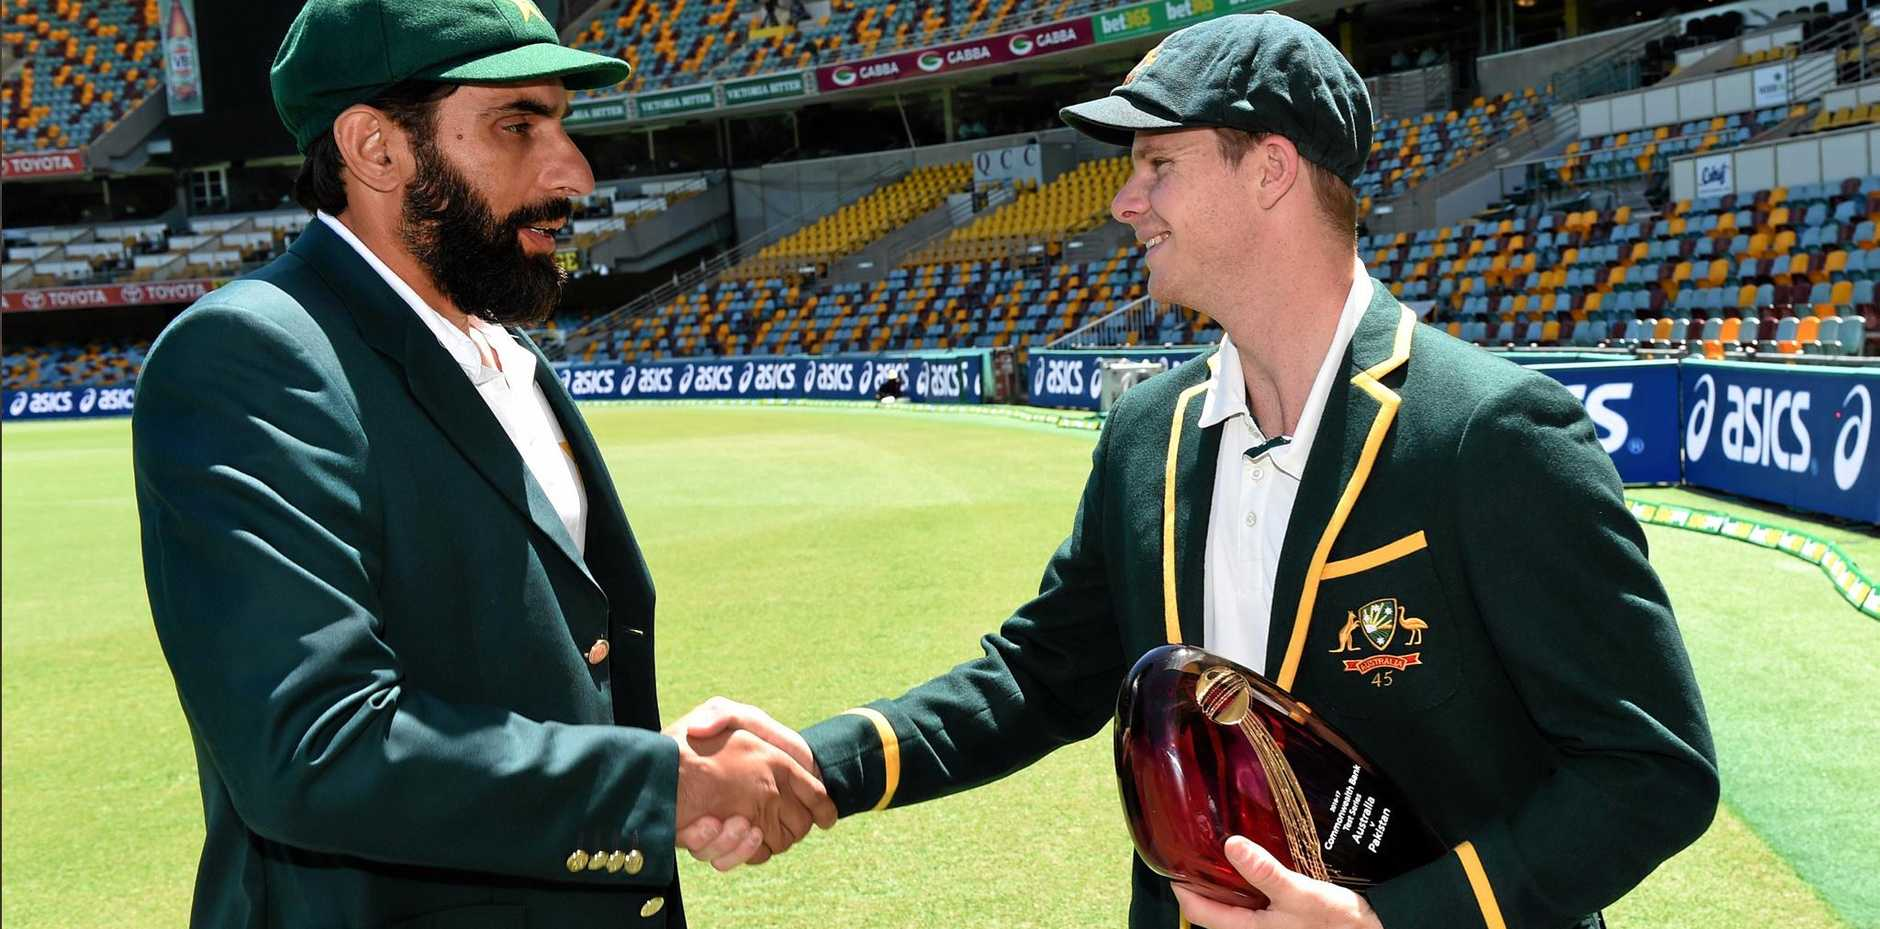 Australian cricket captain Steve Smith (right) and Pakistan captain Misbah-ul-Haq shake hands with the Test series trophy at the Gabba.